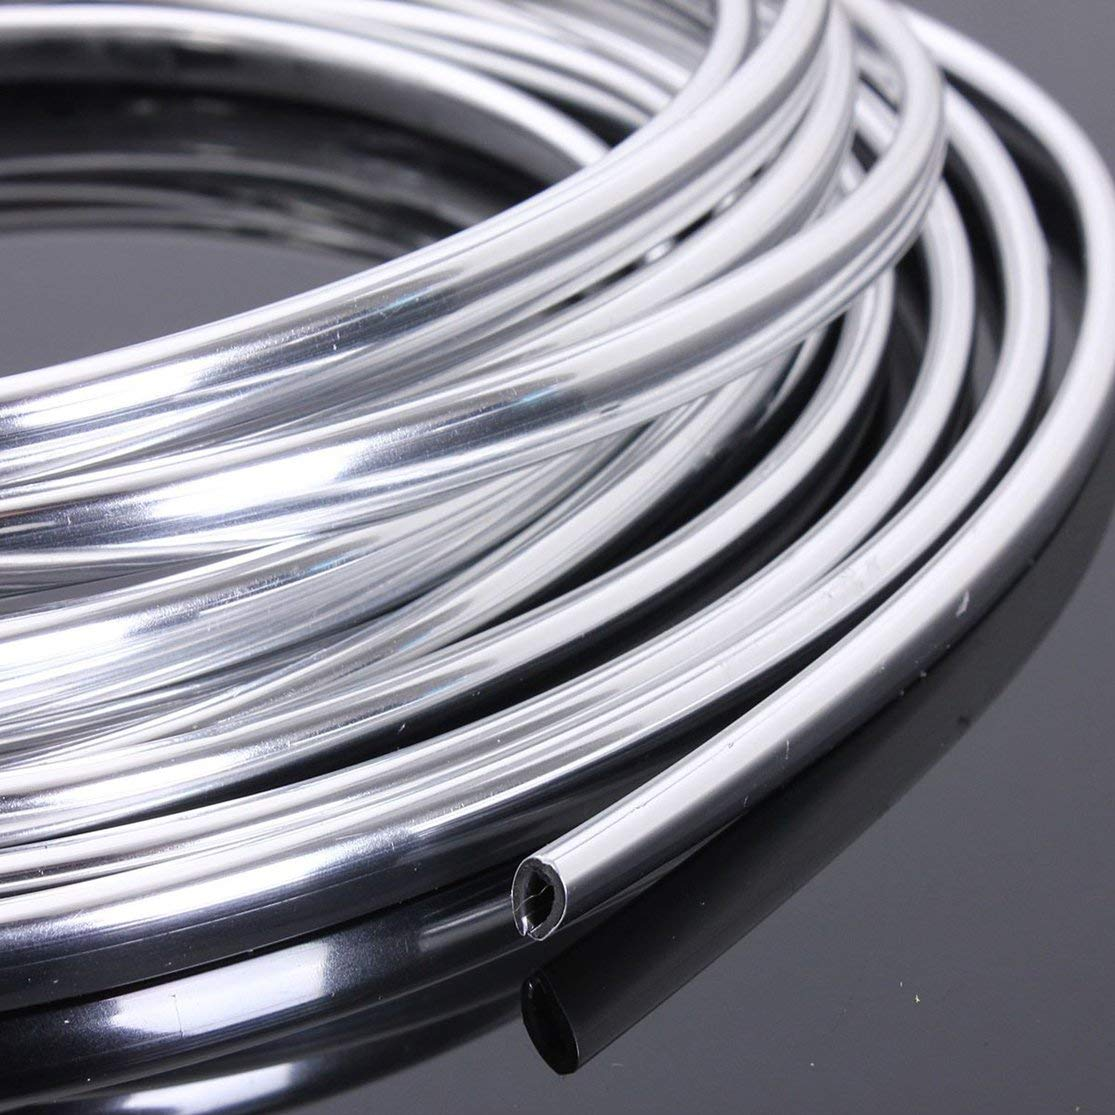 New 6M Chrome Moulding Trim Strip Car Door Edge Scratch Guard Protector Cover Strip Roll